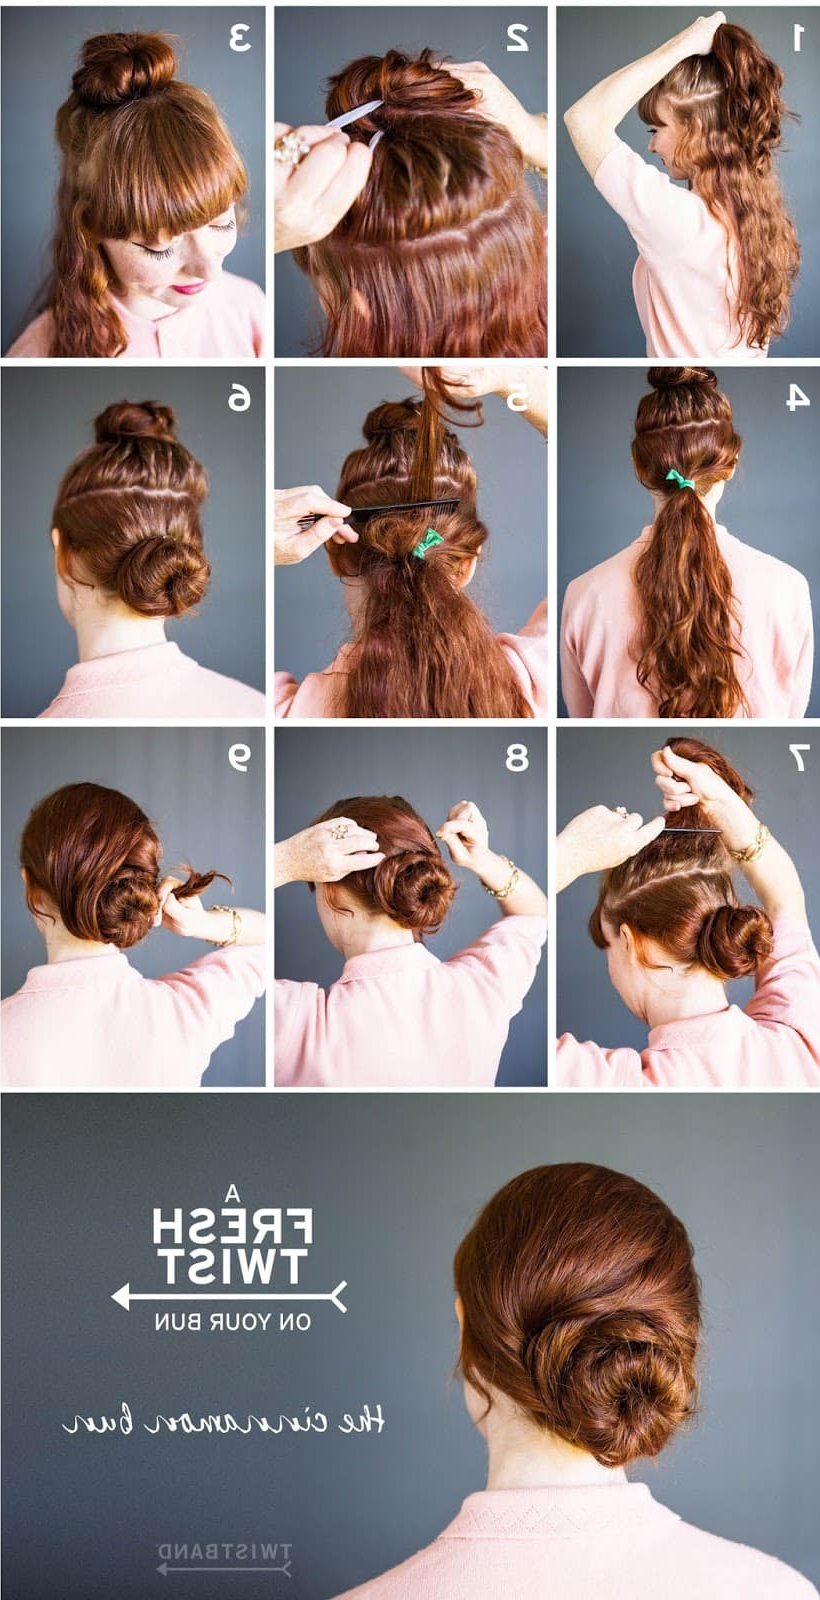 Womens Hairstyles In Well Known Cinnamon Bun Braided Hairstyles (View 20 of 20)